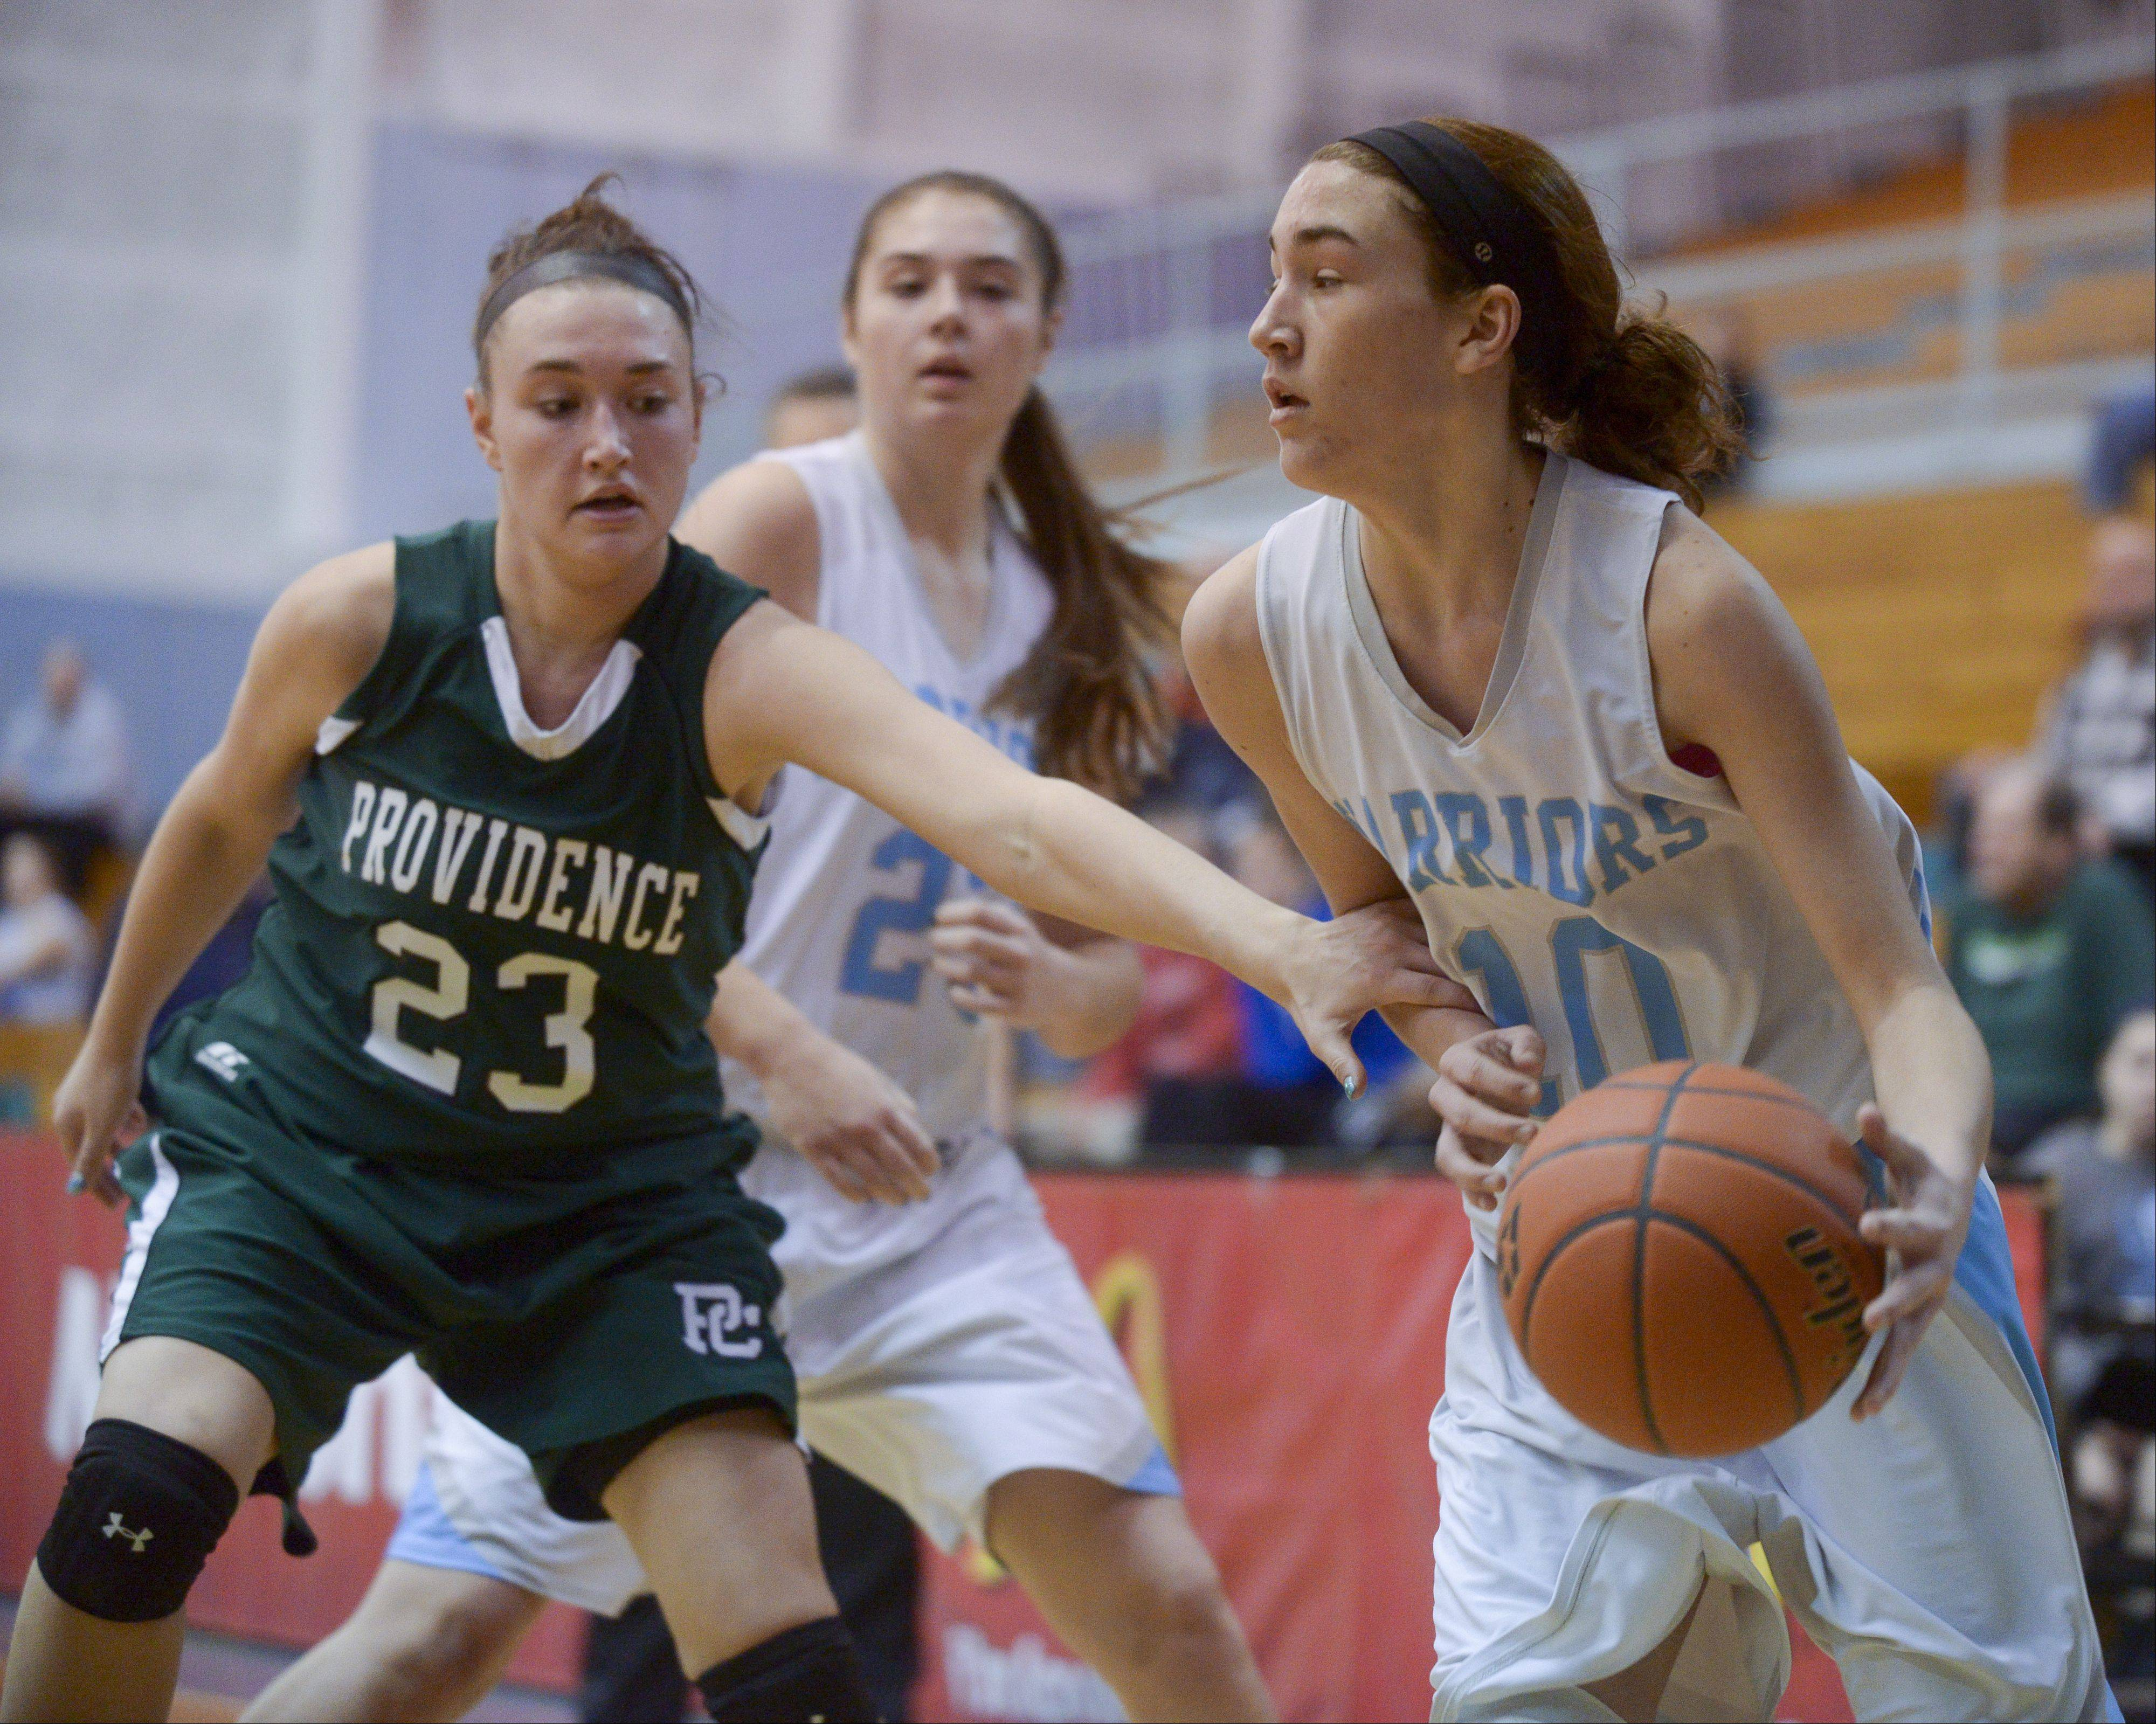 Photos from the Providence vs. Willowbrook girls basketball game on Monday, Jan. 20.